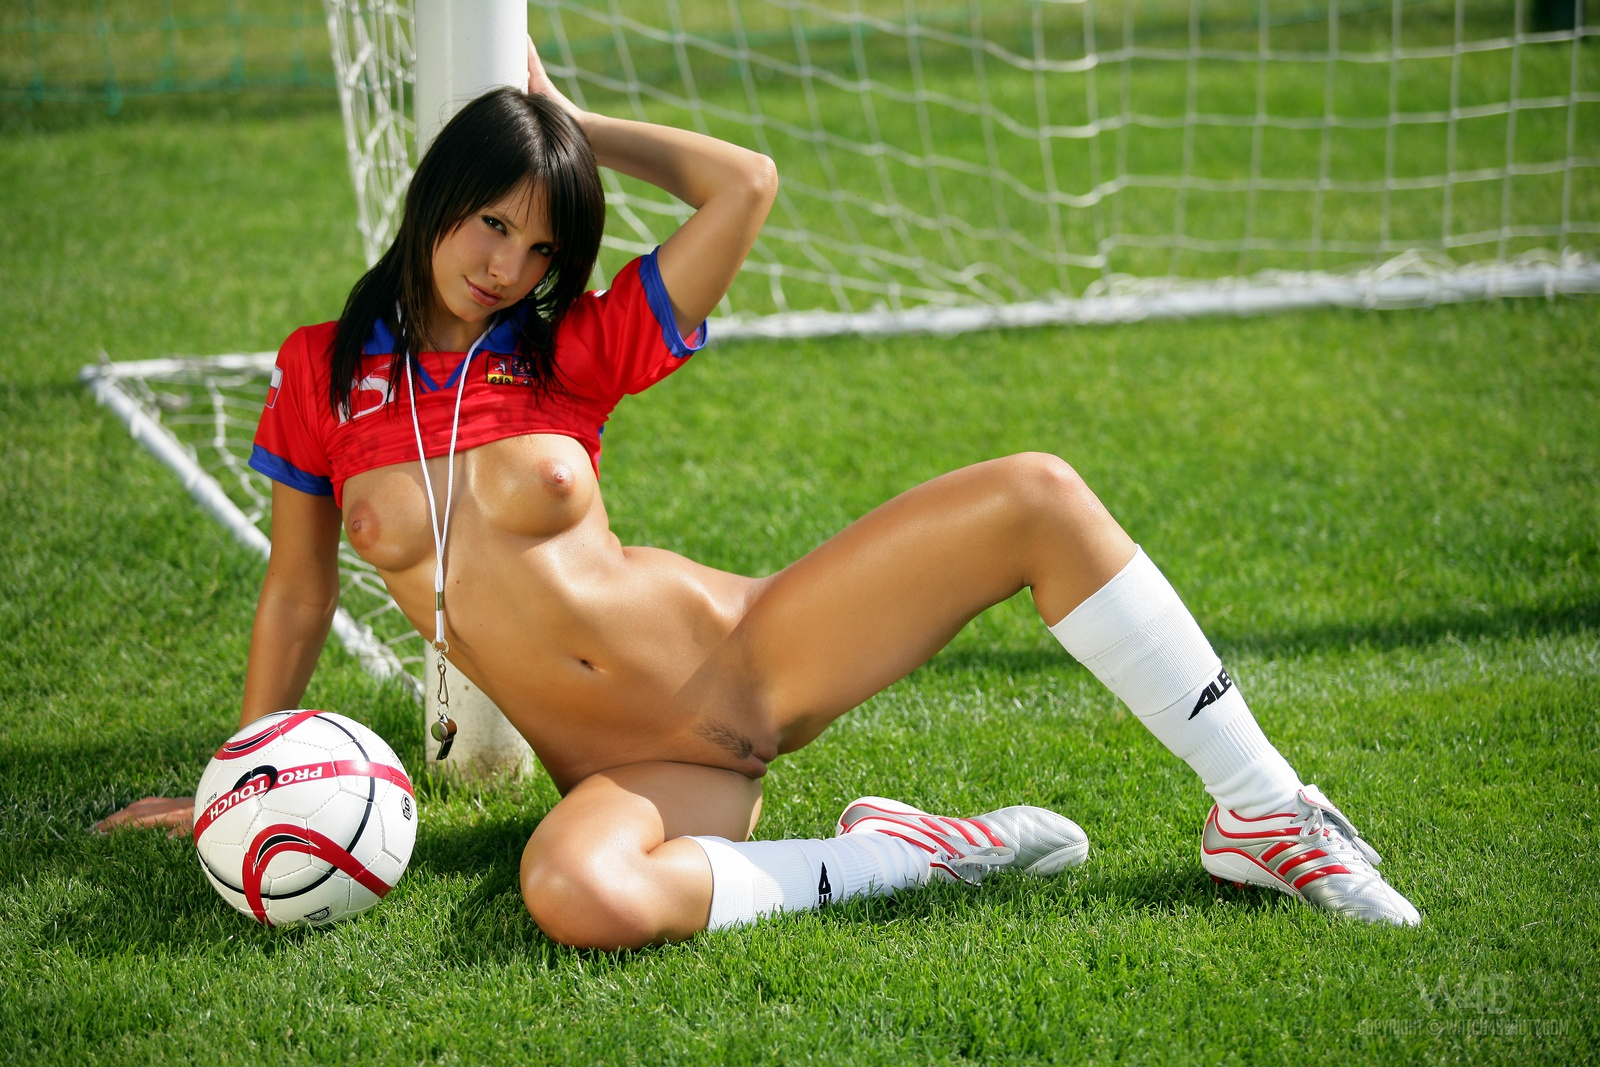 monika-vesela-nude-football-watch4beauty-14